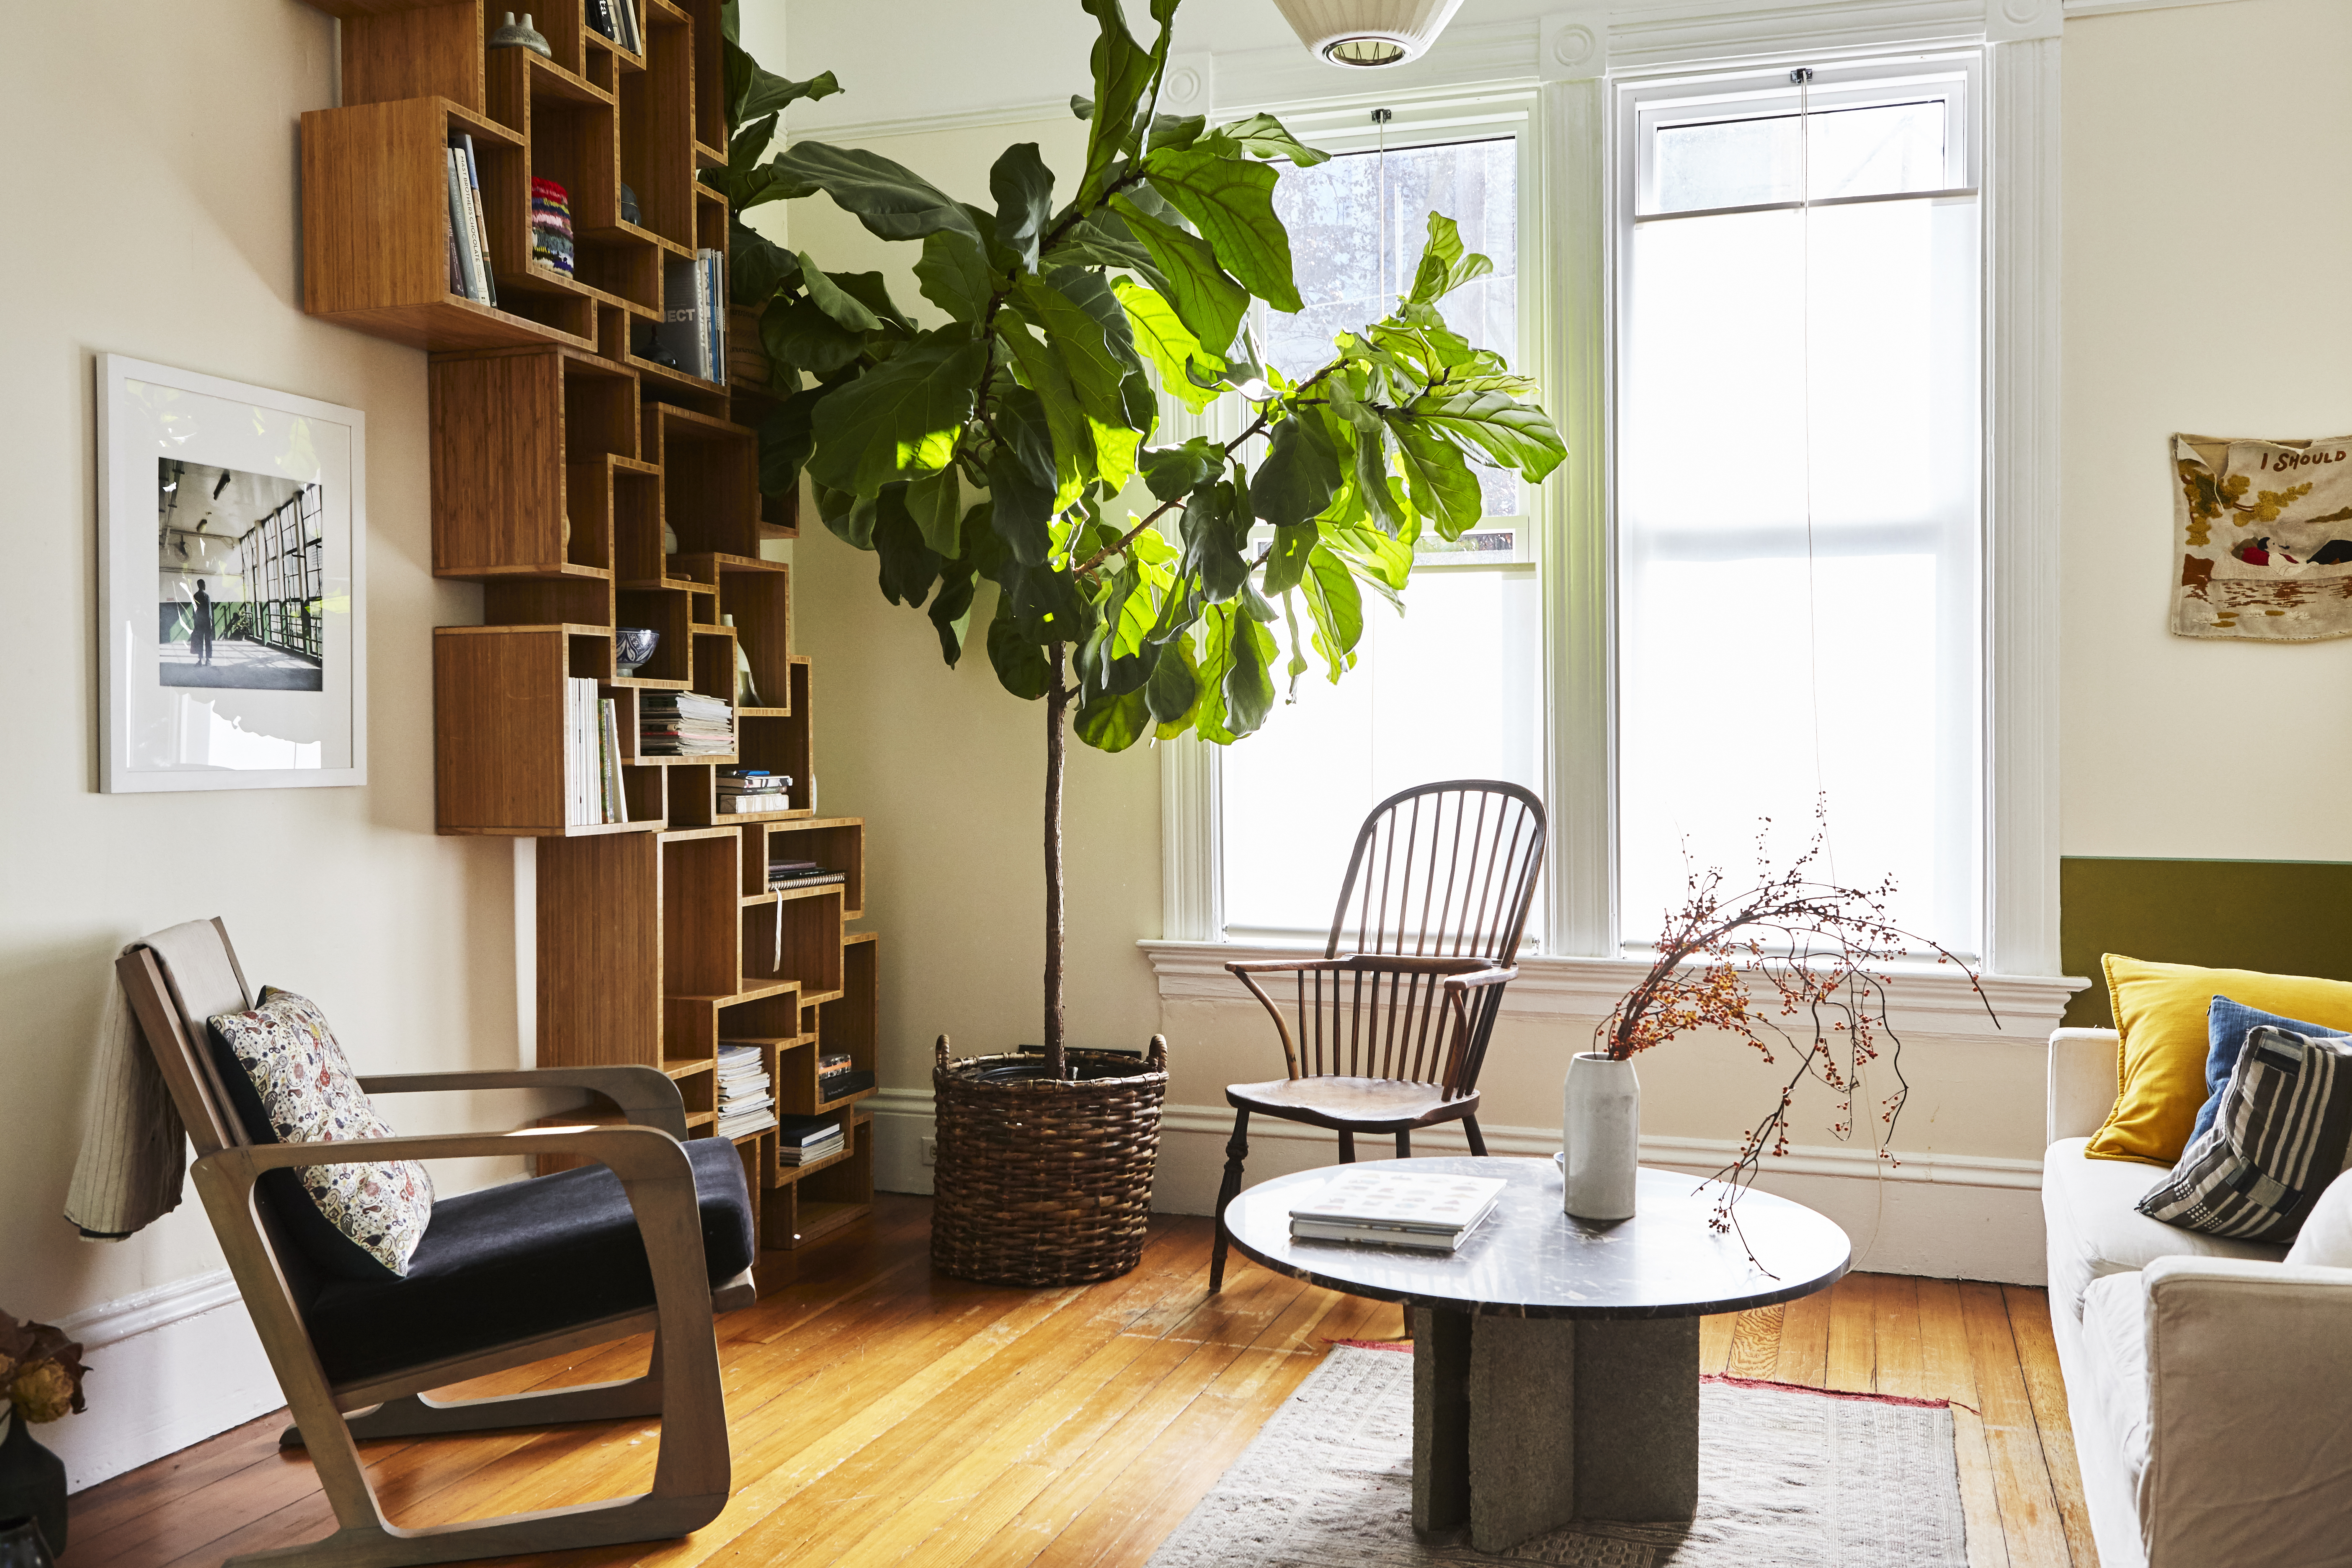 Living room with an abstract shelf, a large plant, and a round coffee table.